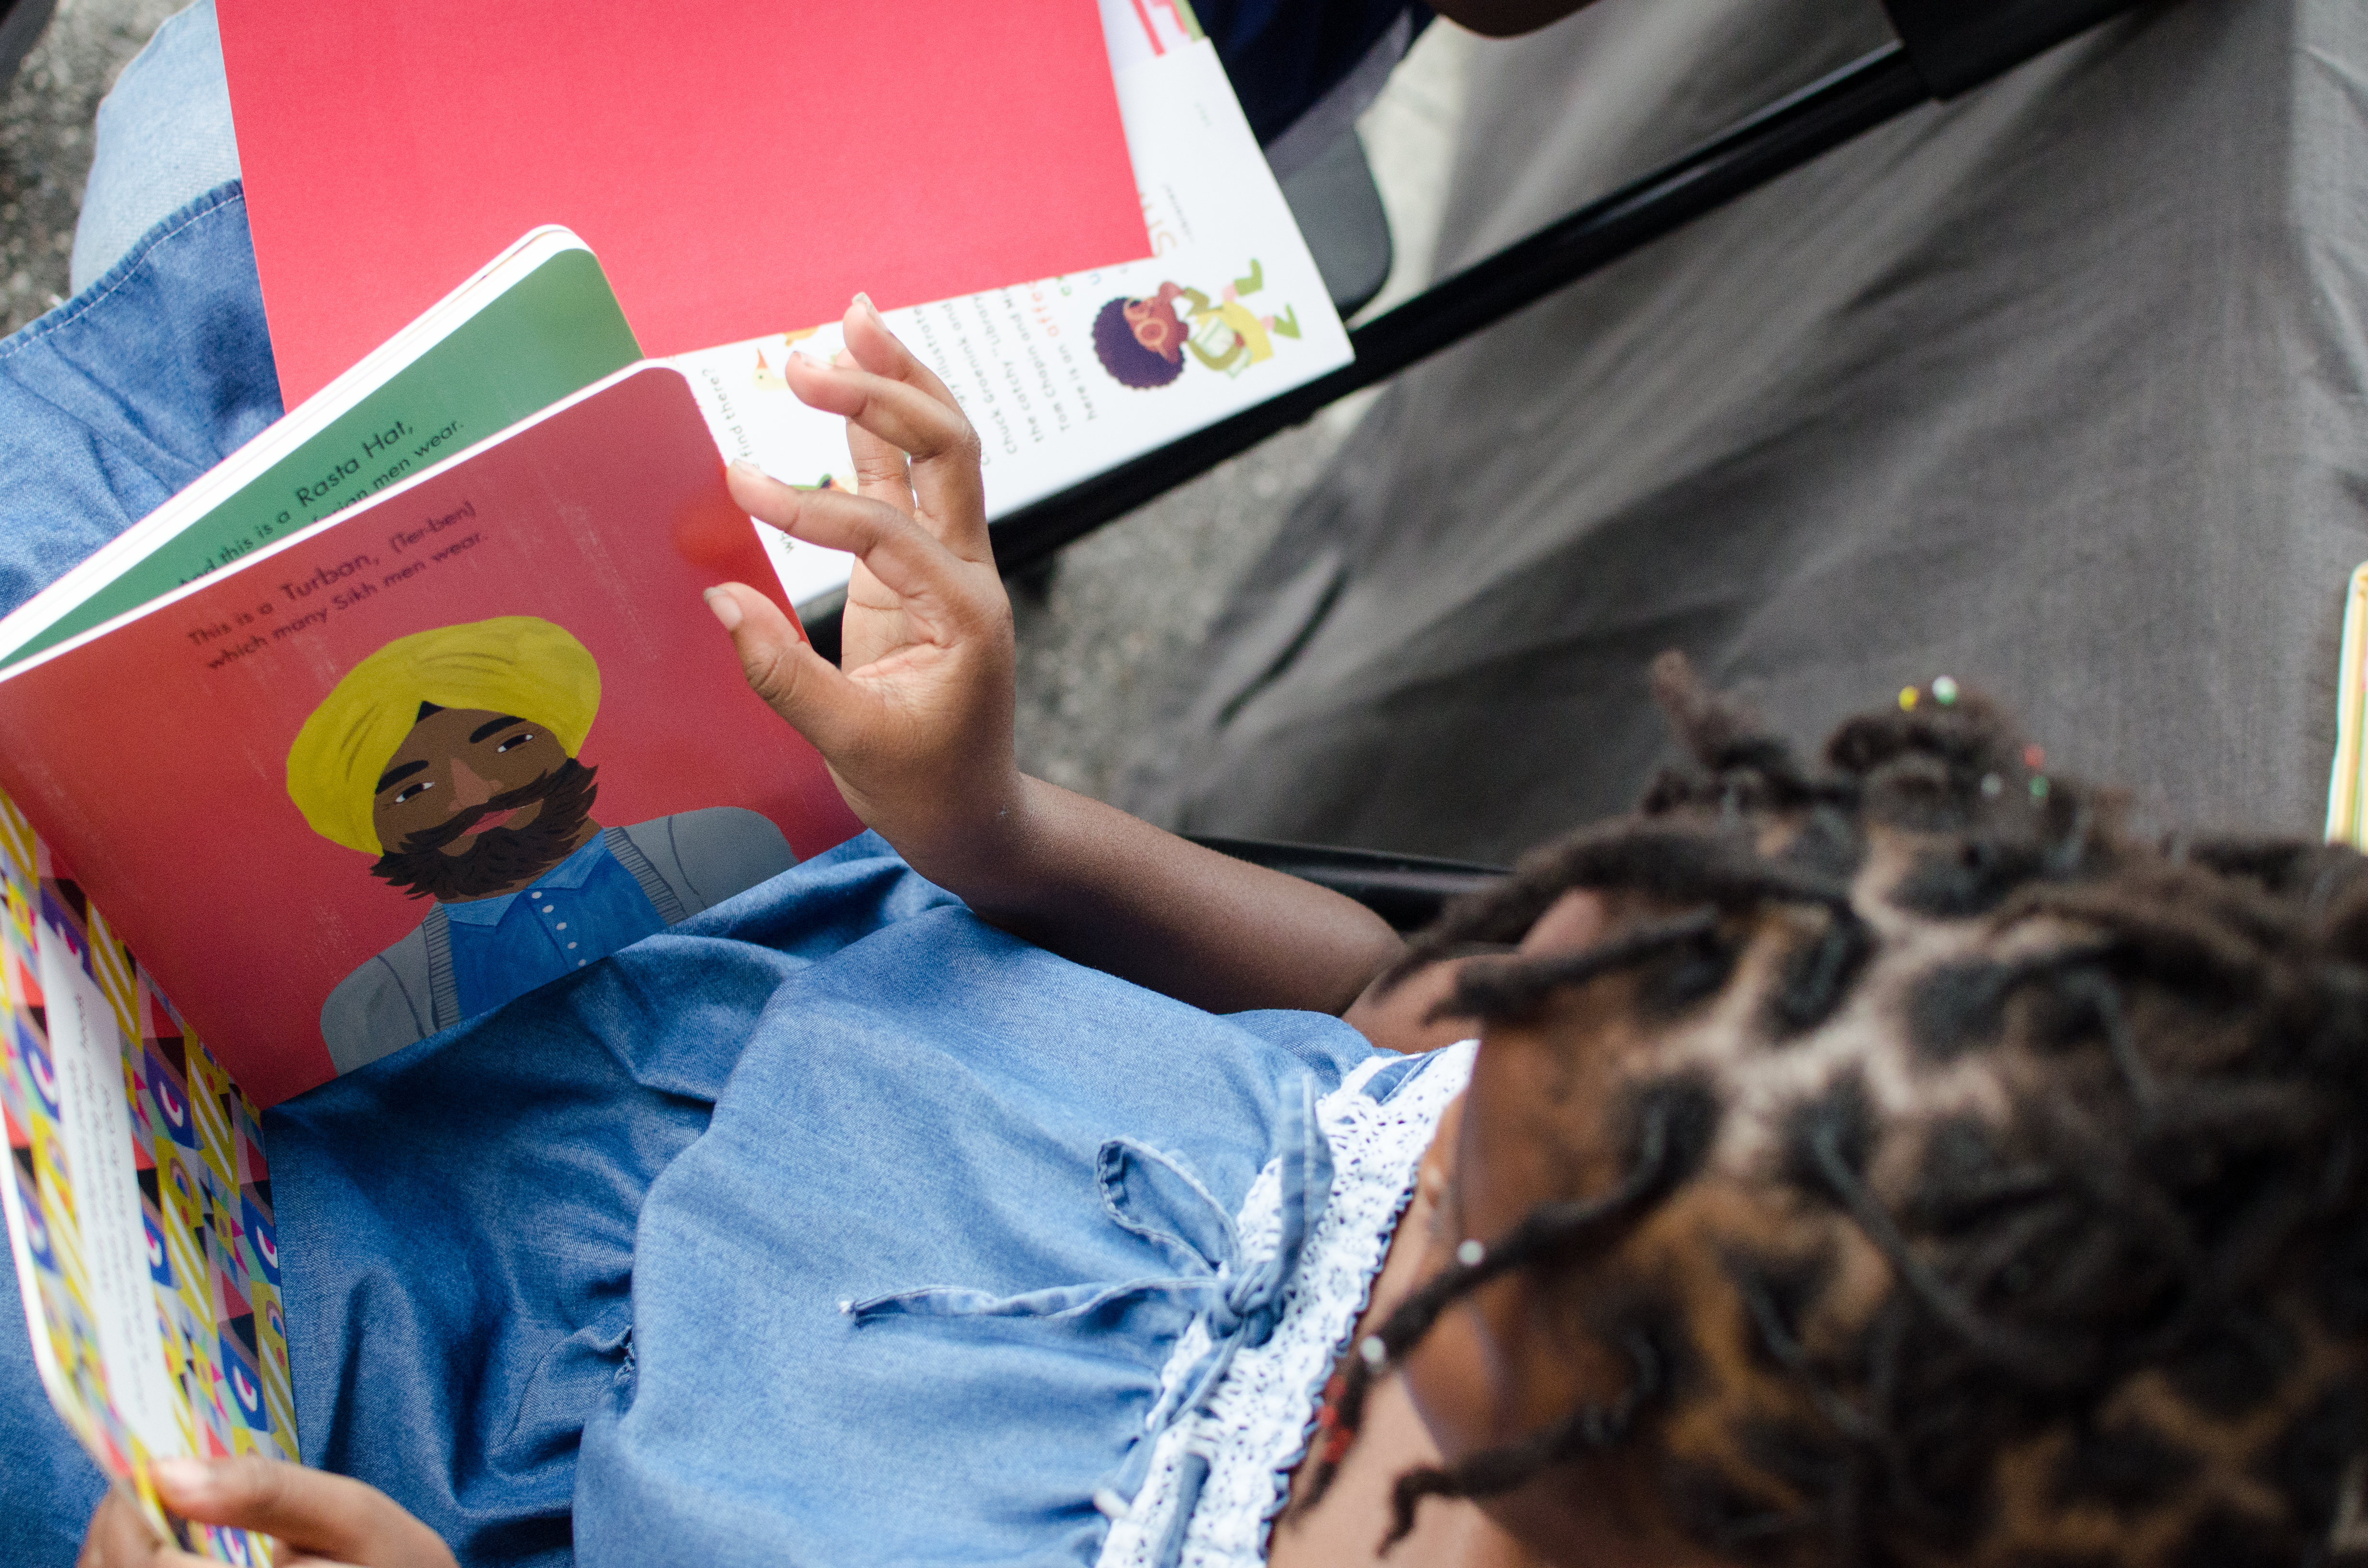 Black child reading board book with pictures depicting head dressings.